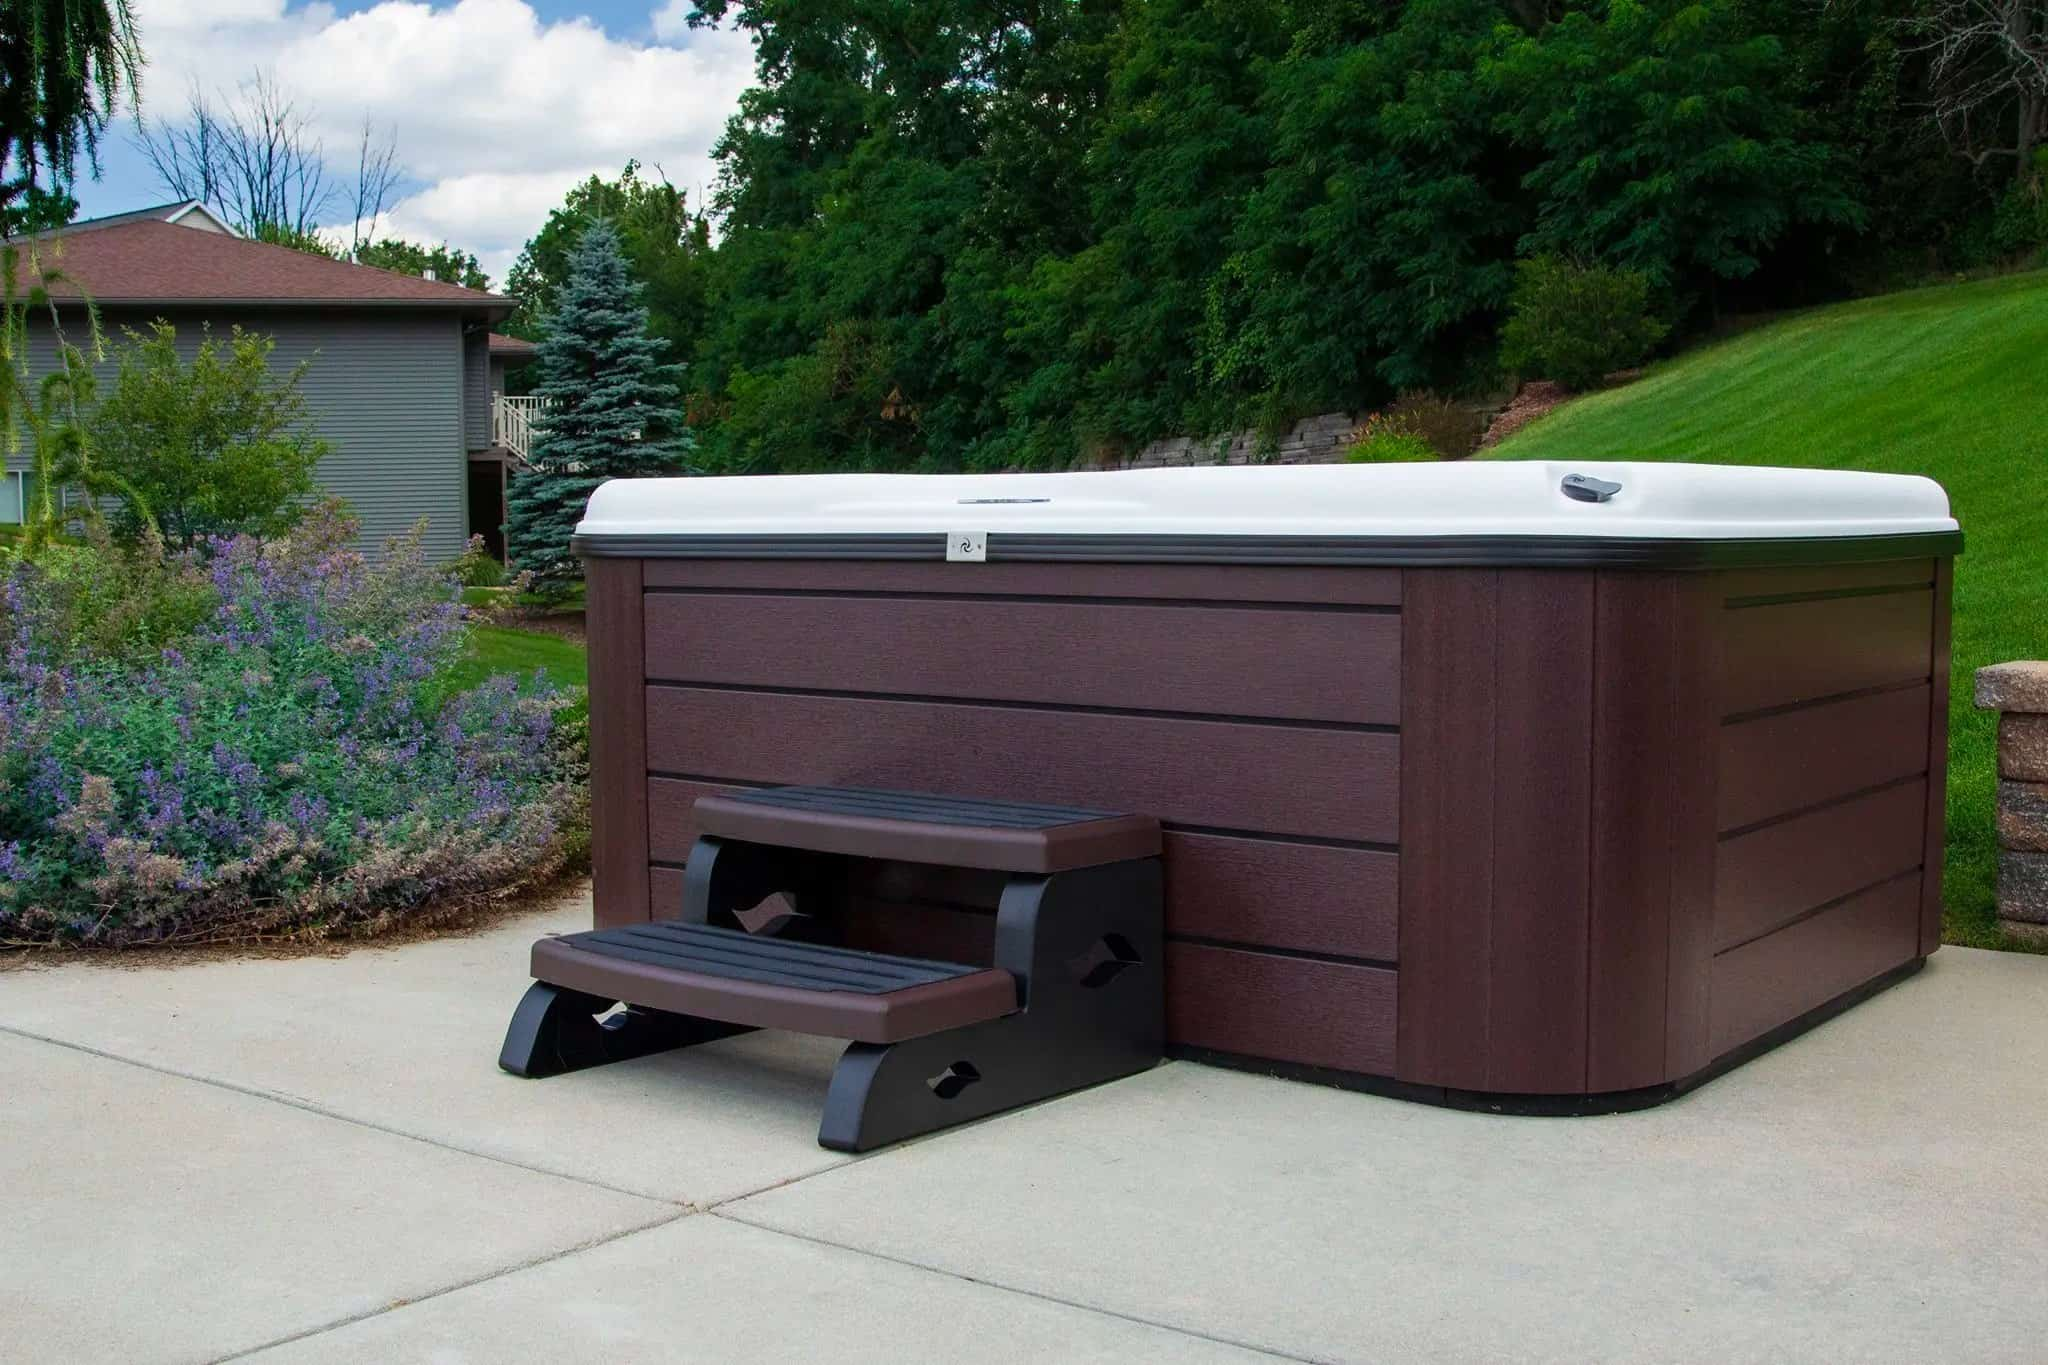 Nordic Spas Jubilee with Leisure Concepts Matching Steps